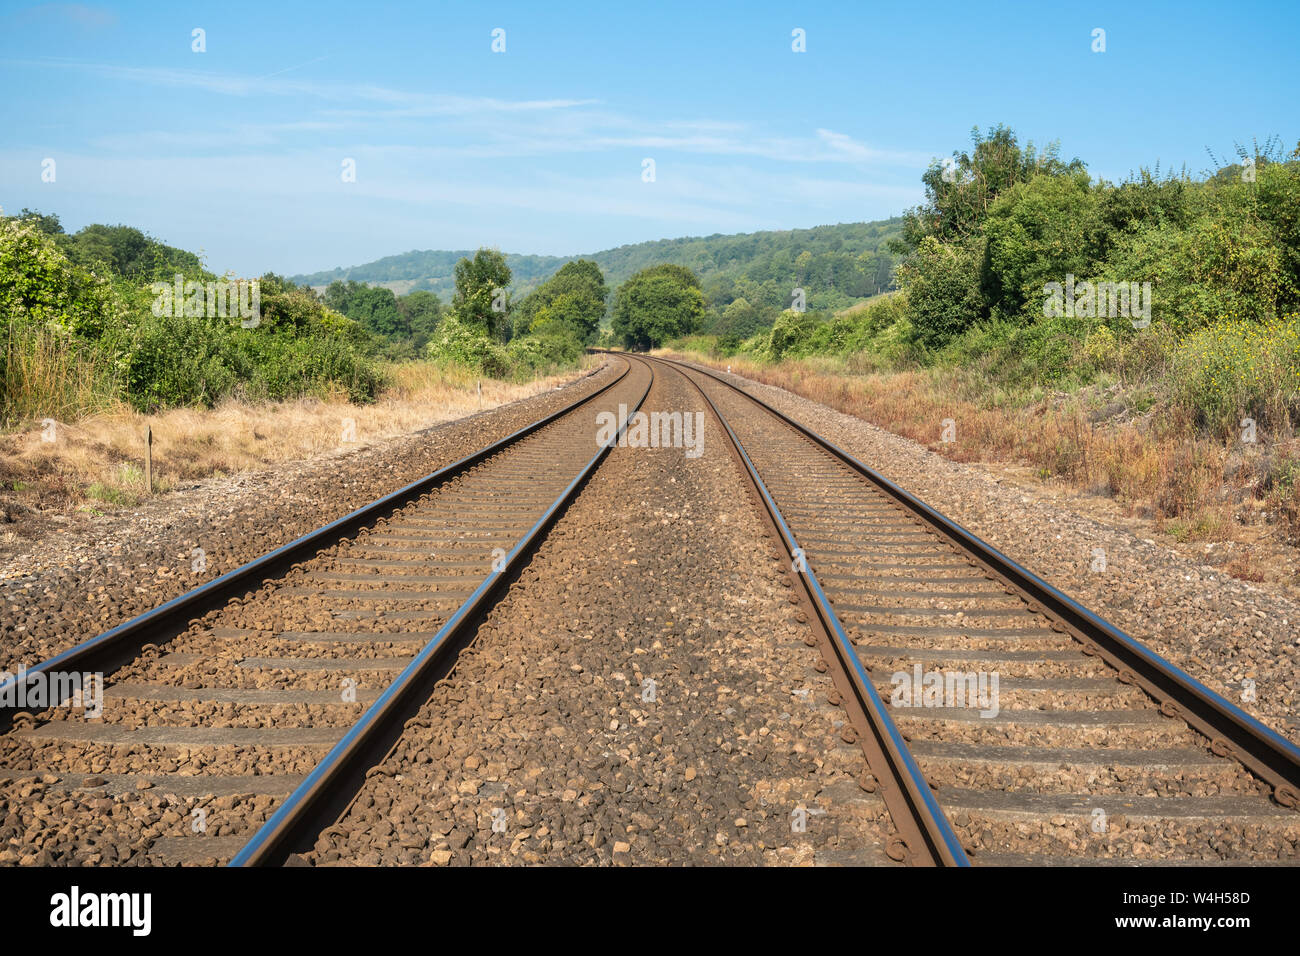 railway-tracks-passing-through-countryside-landscape-in-the-north-downs-surrey-hills-aonb-uk-W4H58D.jpg